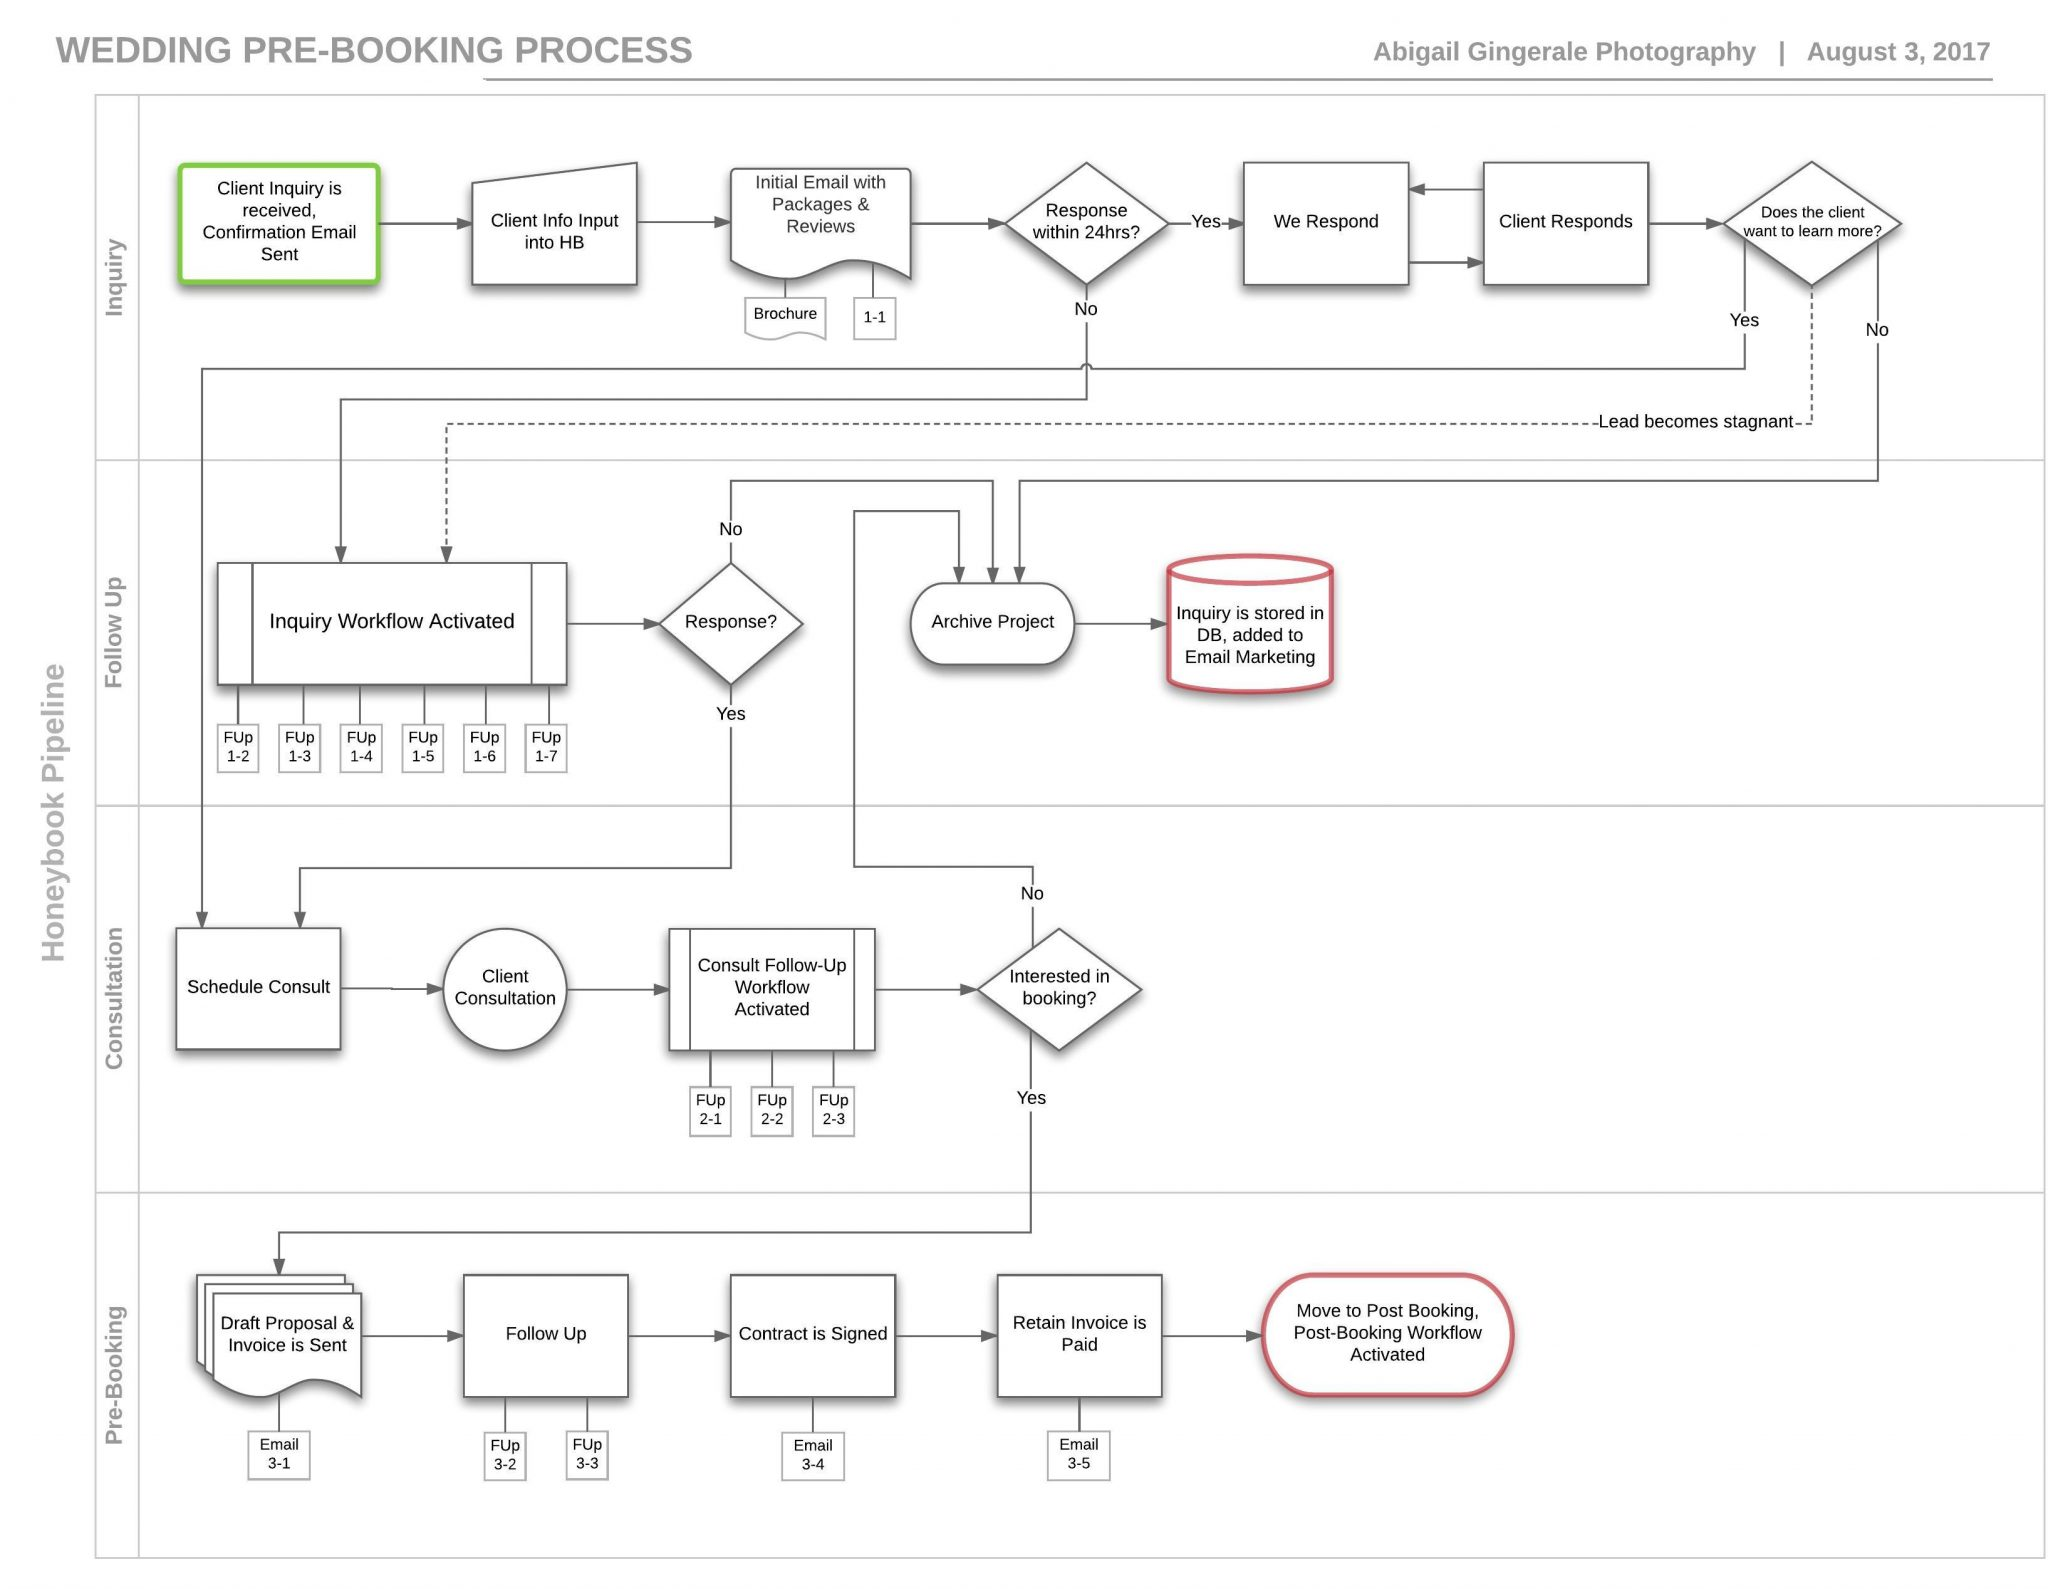 Complete Abigail Gingerale Process Map